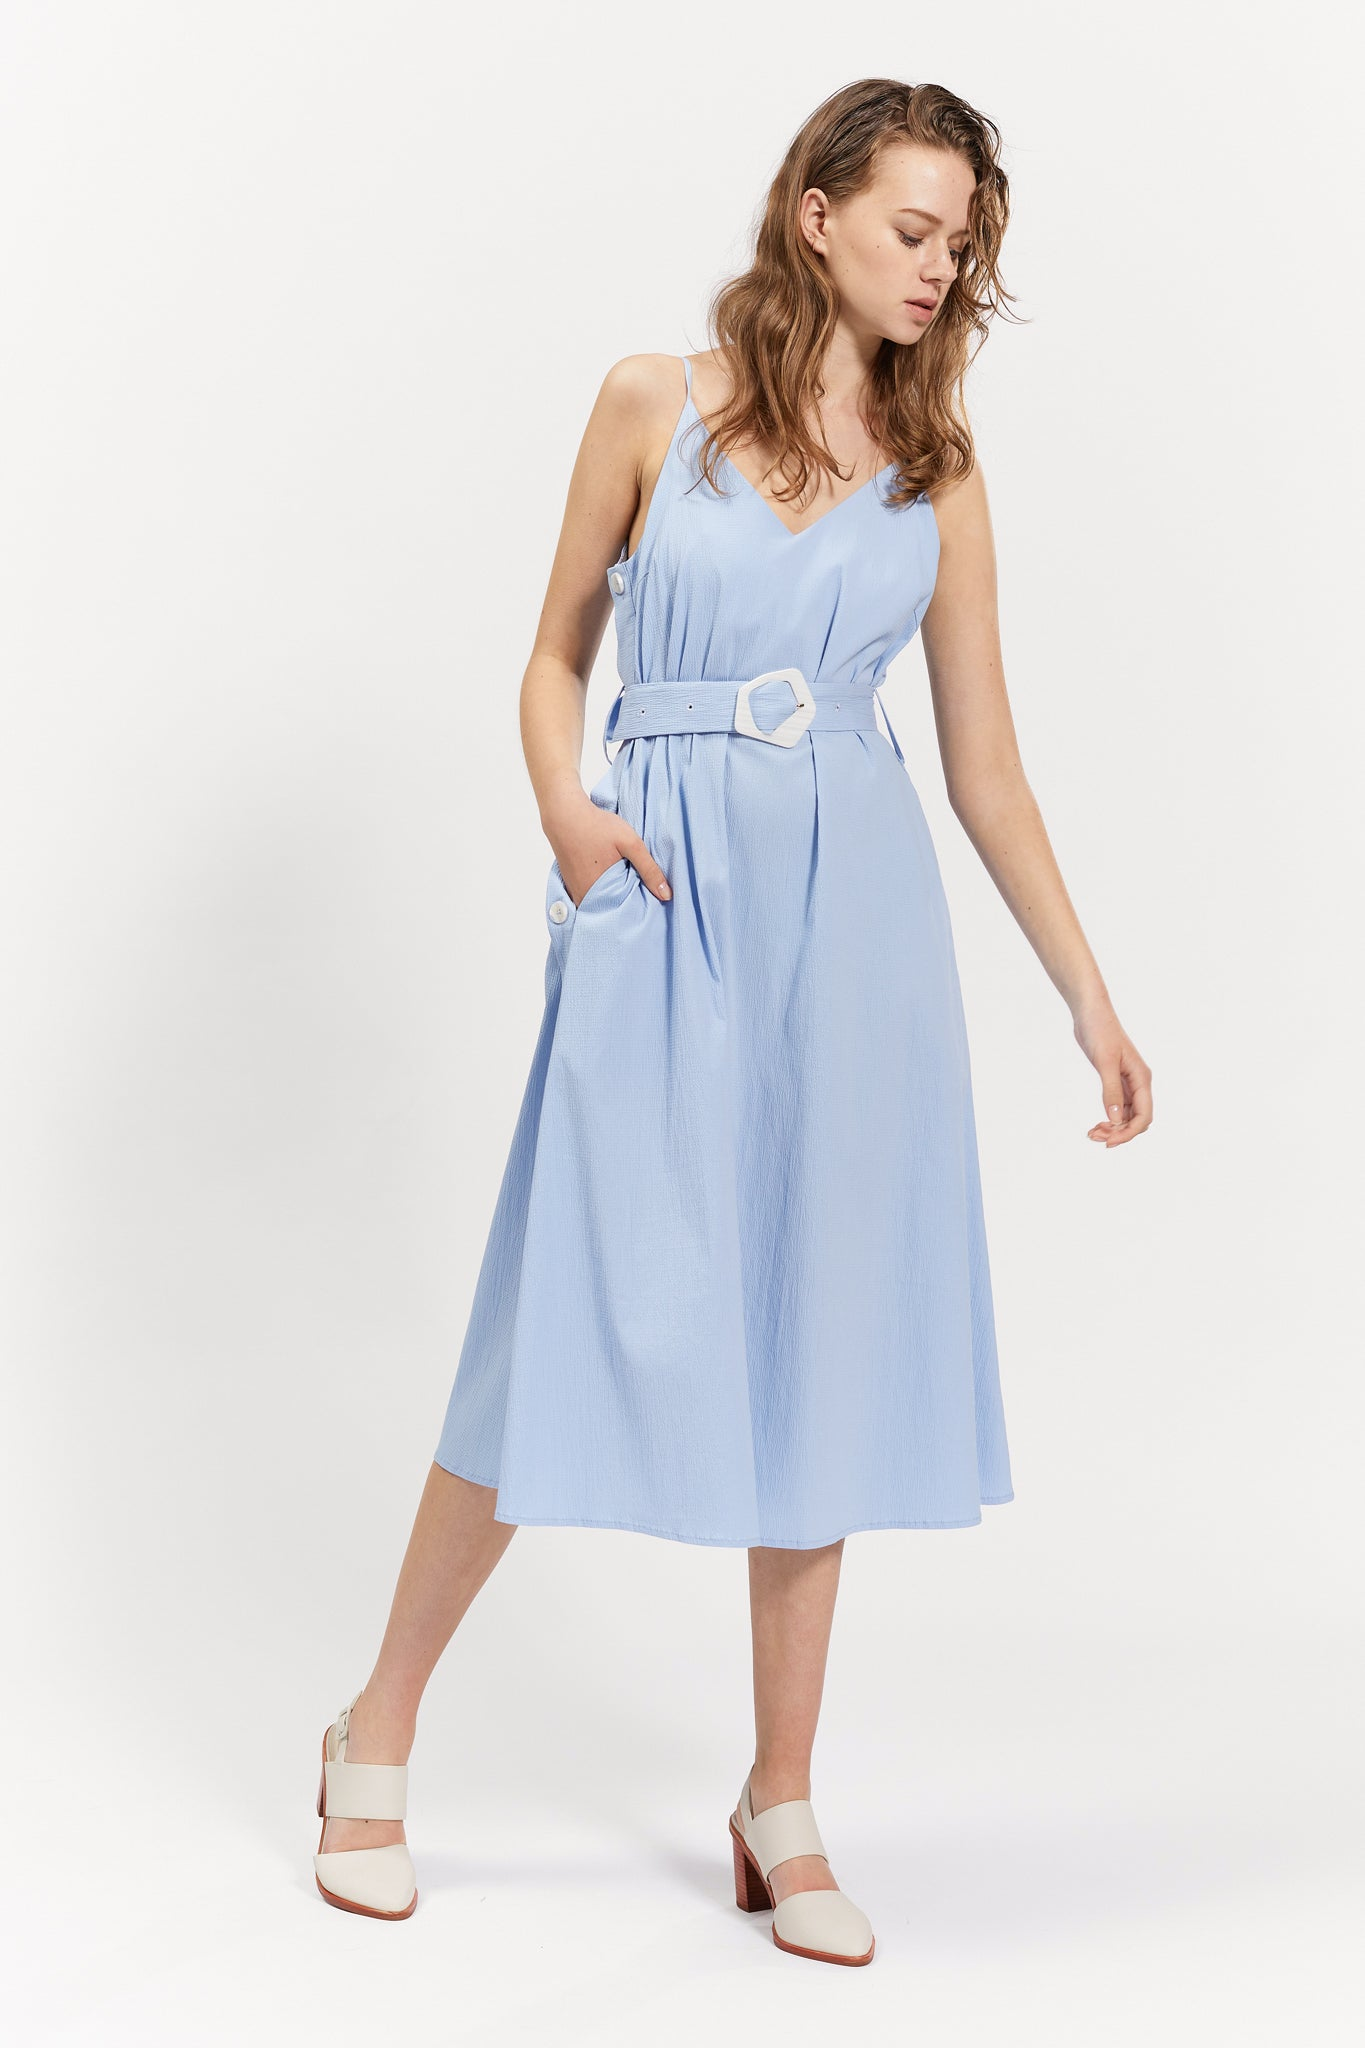 agnes dress light blue